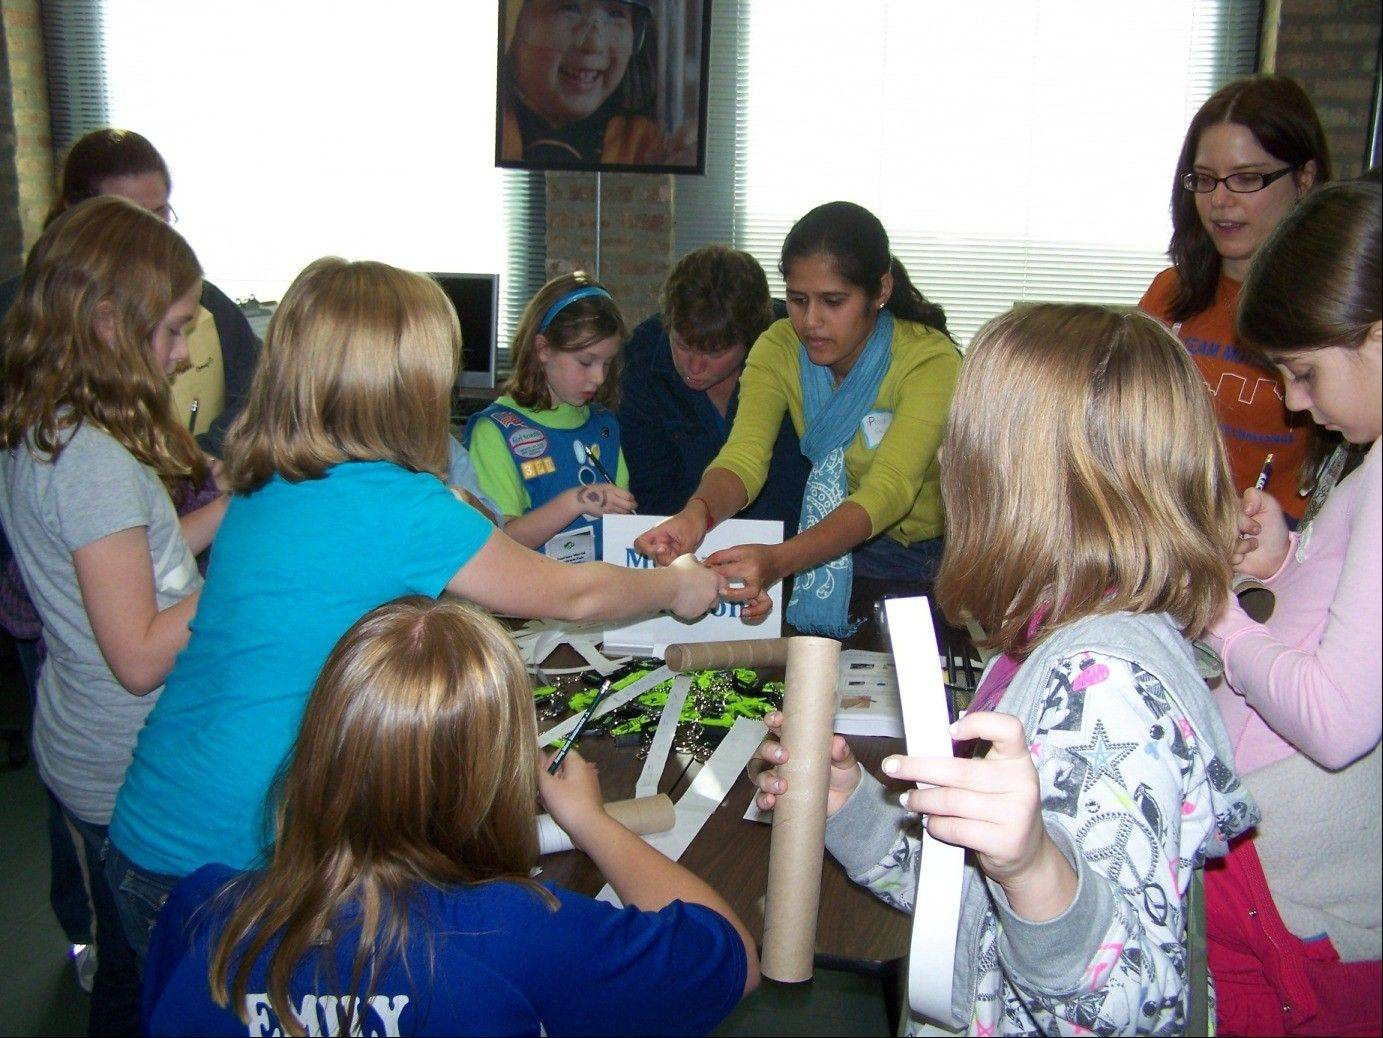 Katrin Hoeper, senior security research engineer, and Pooja Gautham, senior software engineer, teach Girl Scouts about careers in engineering at a Science Fair held at Journey World, Girl Scouts of Greater Chicago and Northwest Indiana�s experiential learning center.